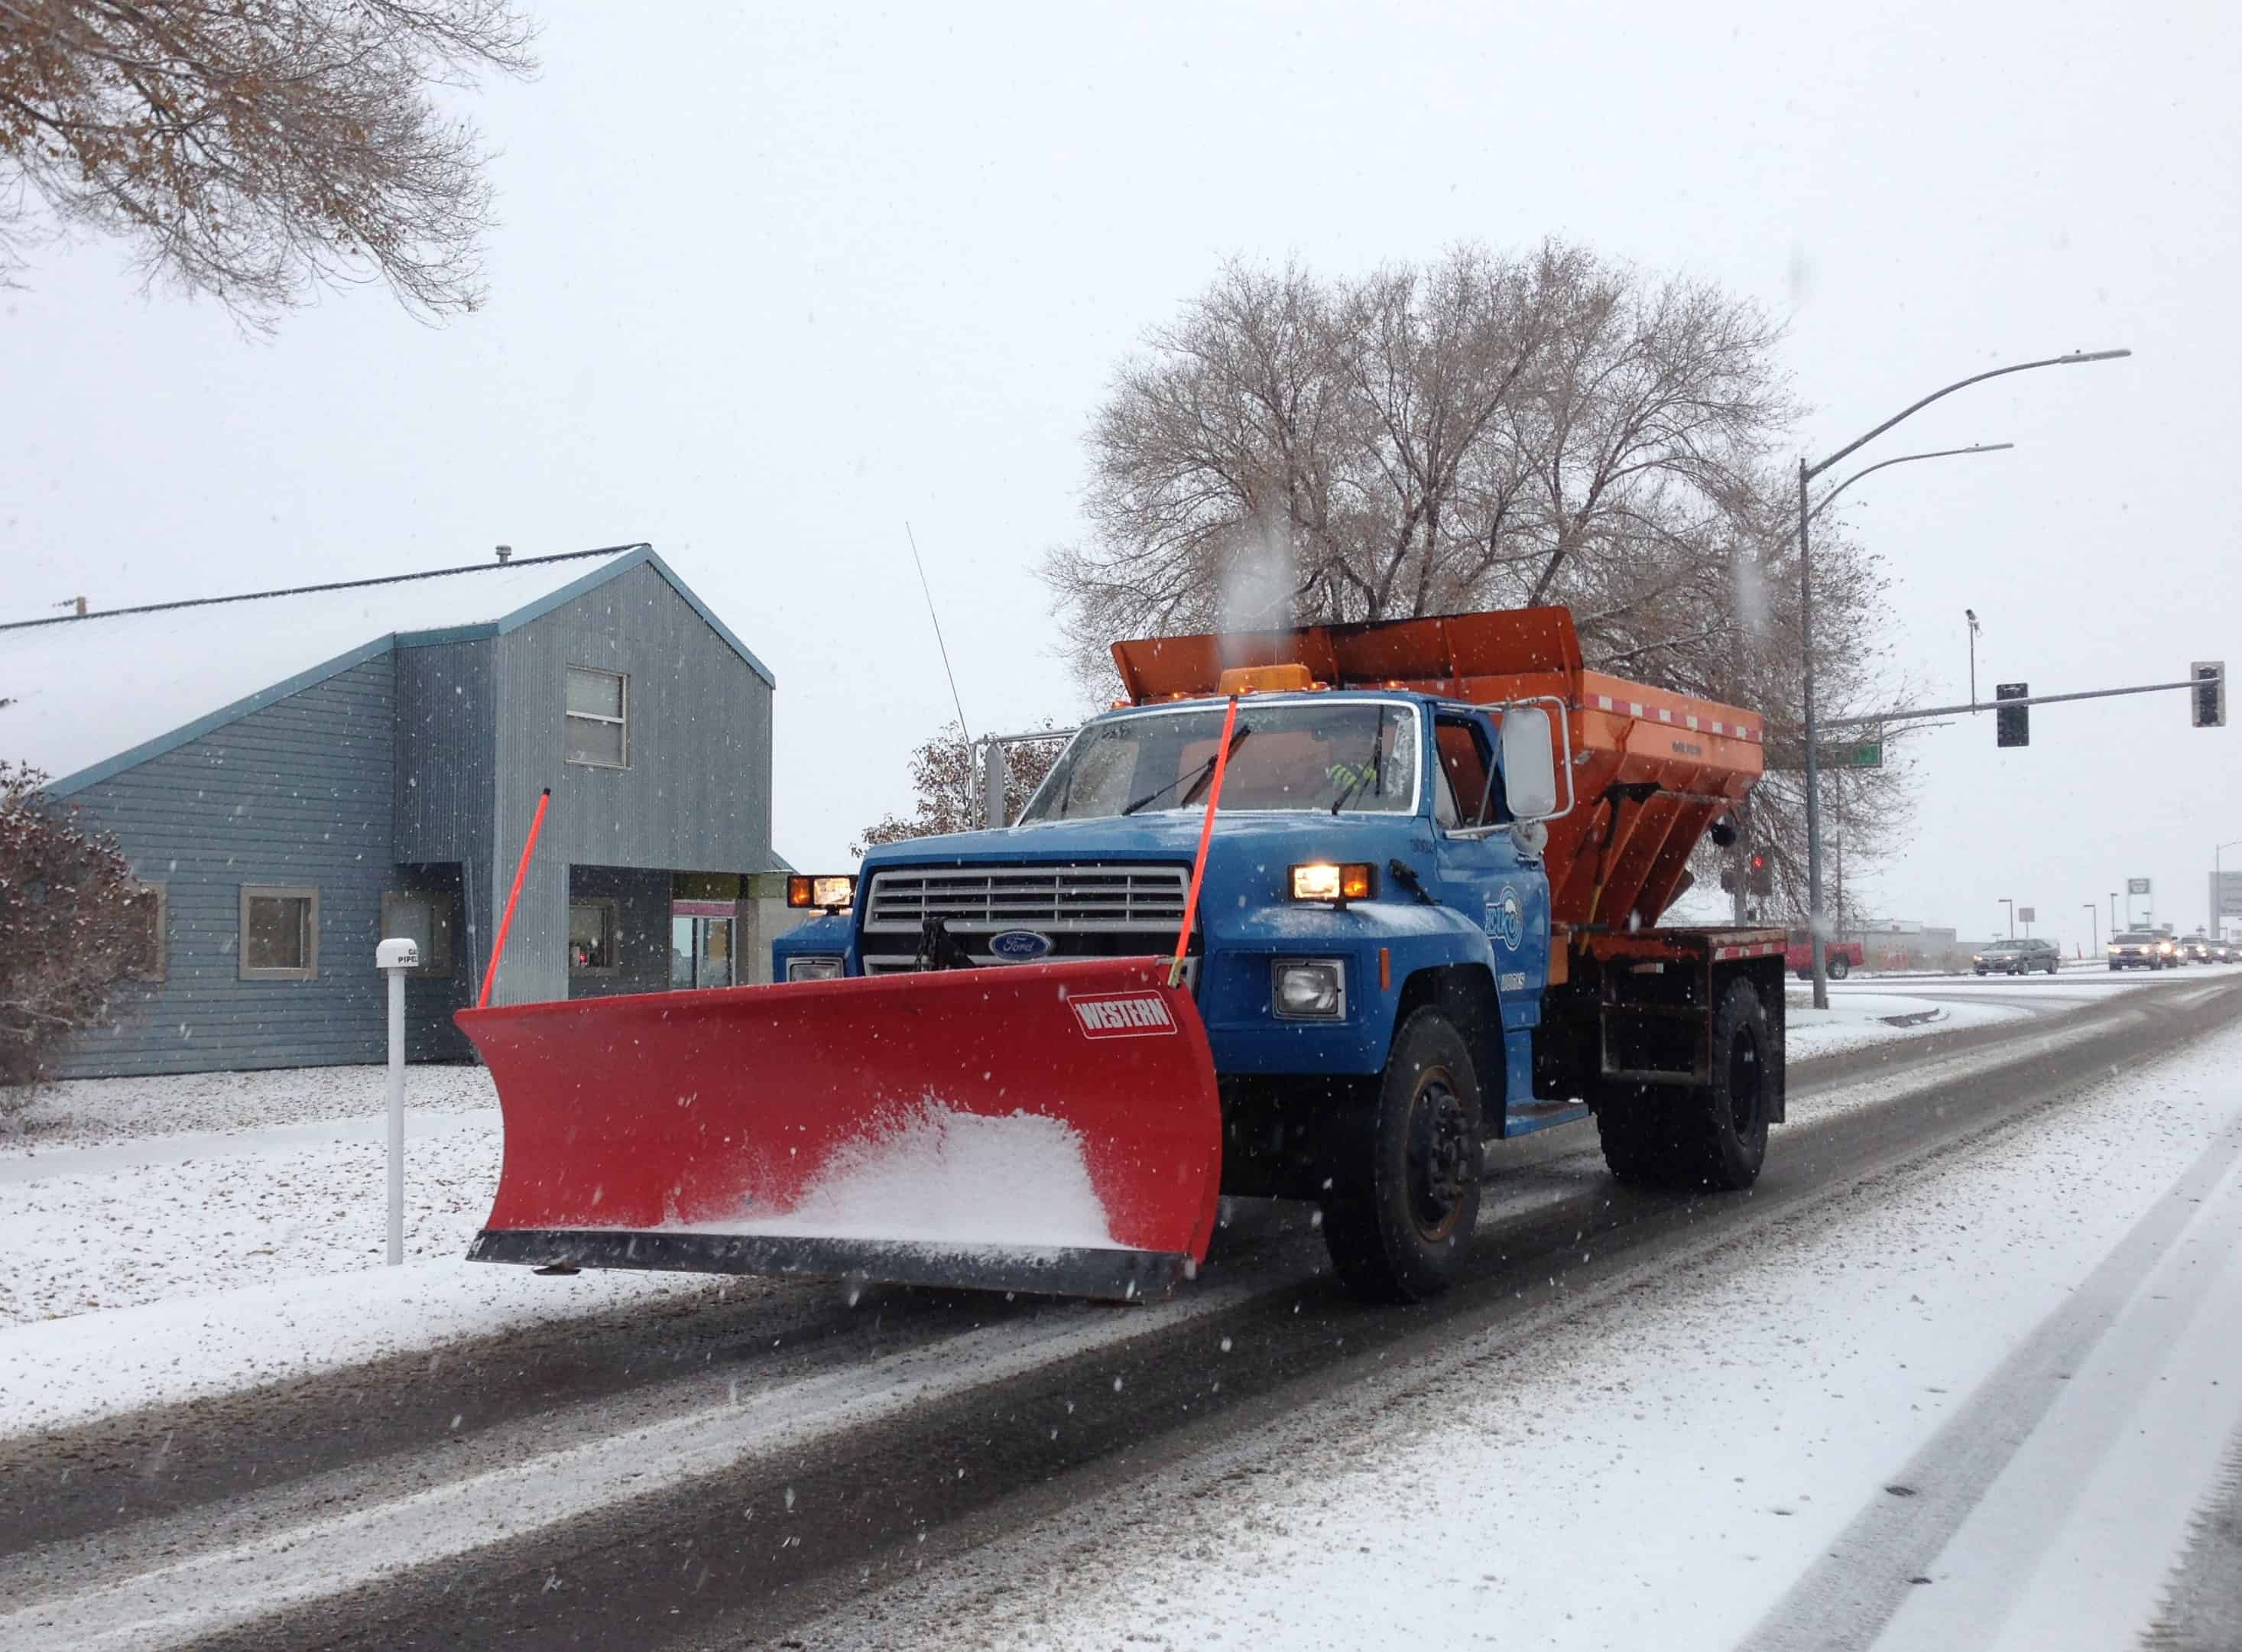 Patrick's Mobile snow plow truck clearing London Ontario streets